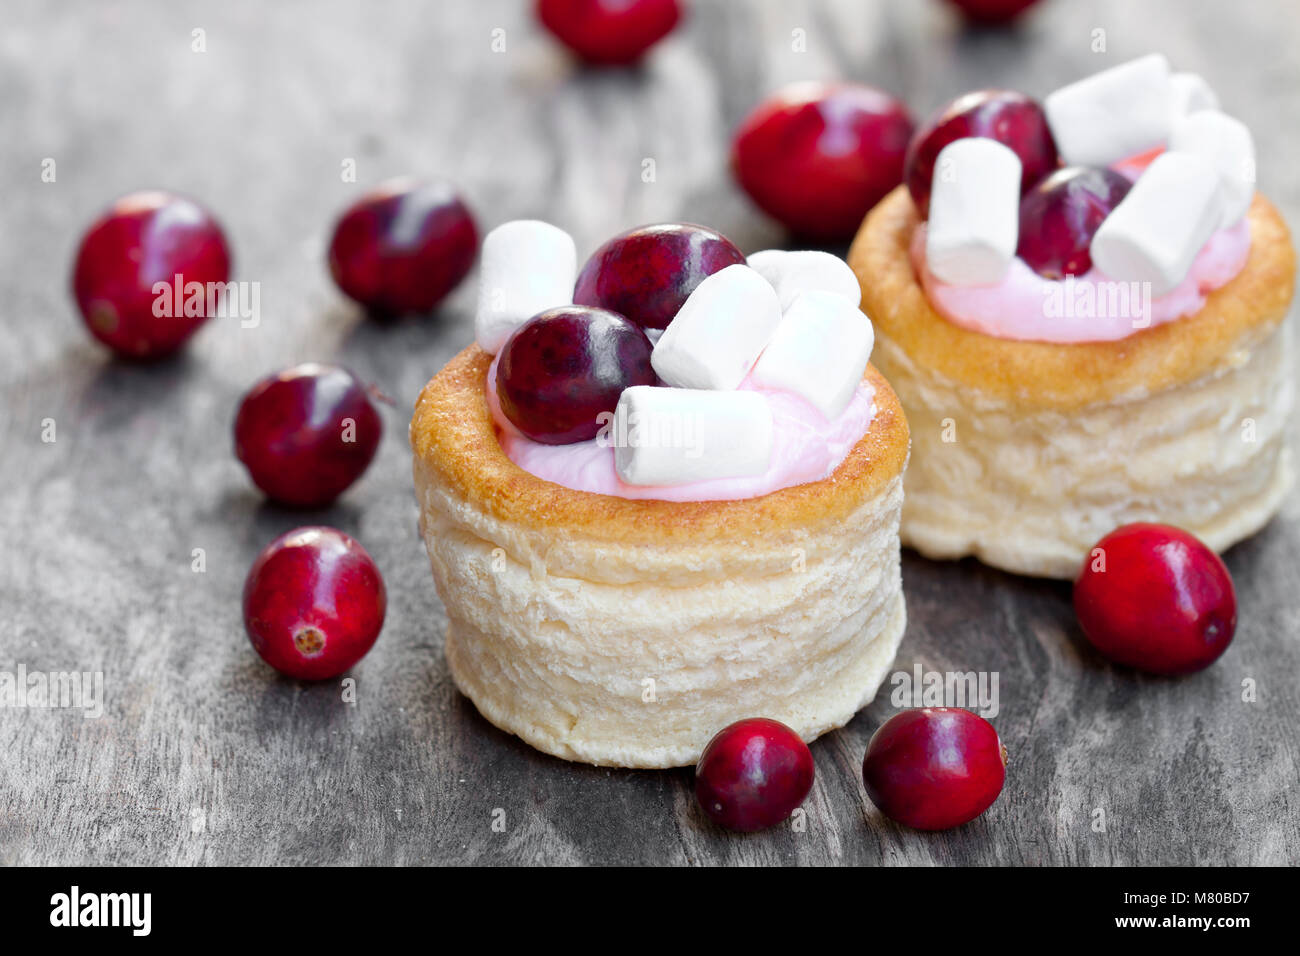 puff  pastry stuffed with fruity soft cream cheese and cranberry on wooden background - Stock Image